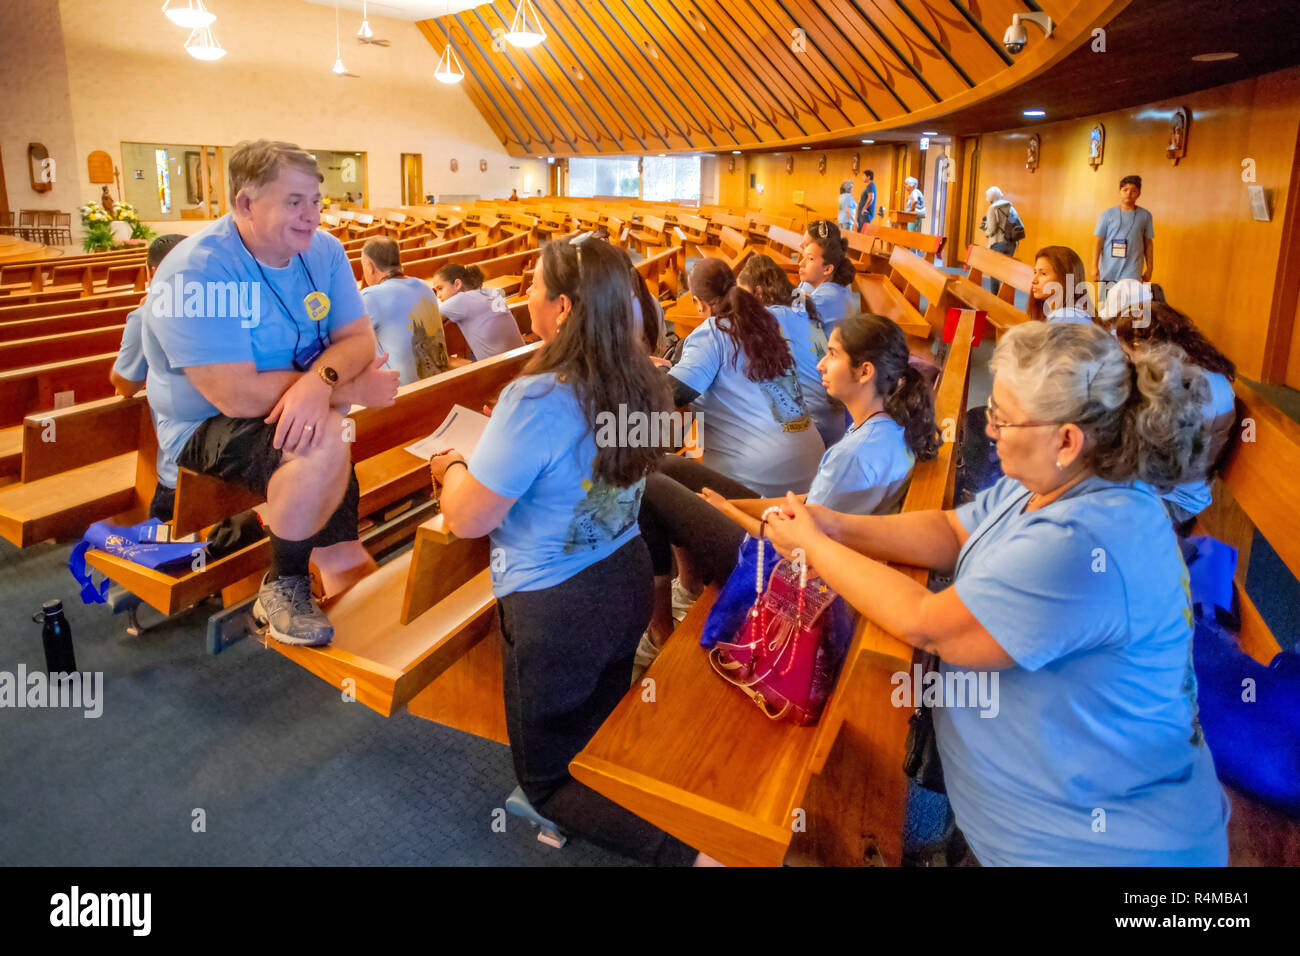 A deacon meets with parishioners after a congregational pilgrimage at a Lake Forest, CA, Catholic church. - Stock Image